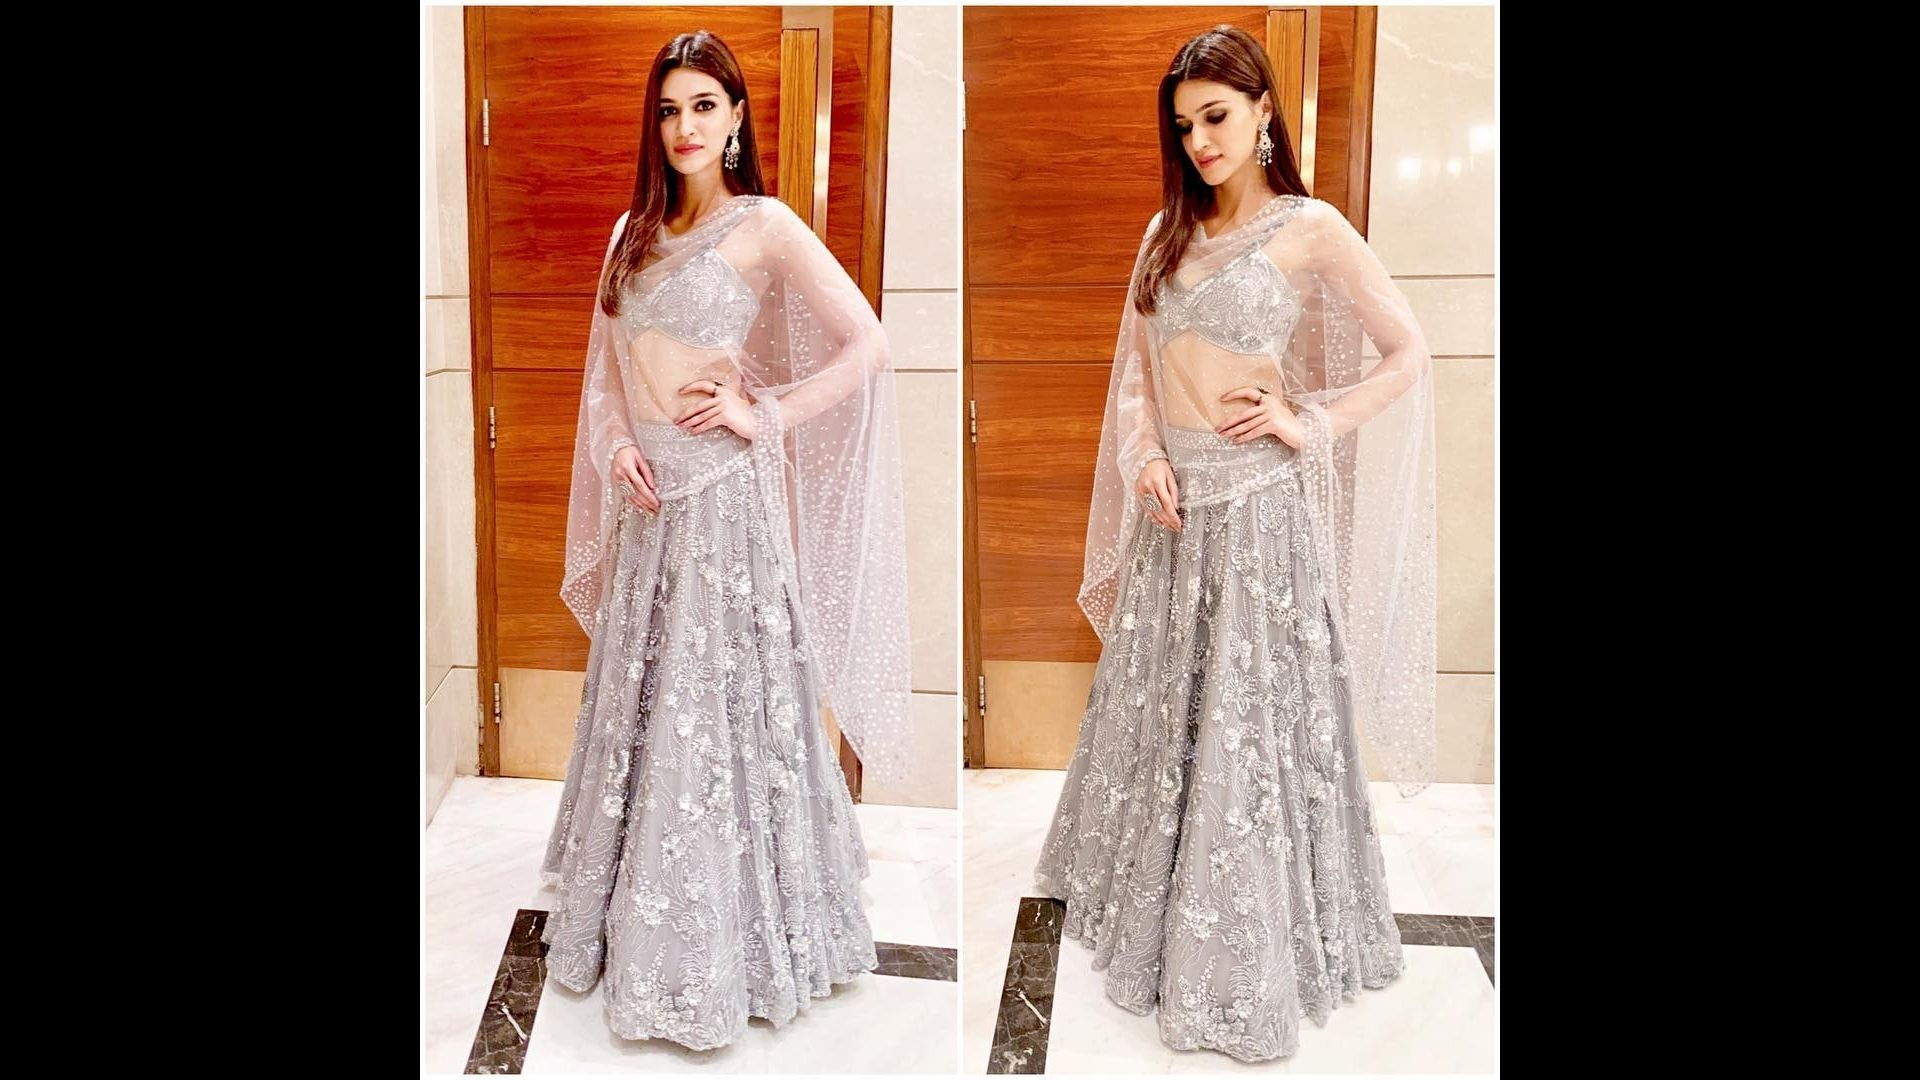 Navratri 2021 Day 3: Kriti Sanon's Top Three Looks In The Grey Outfits That Are Perfect For The Third Day